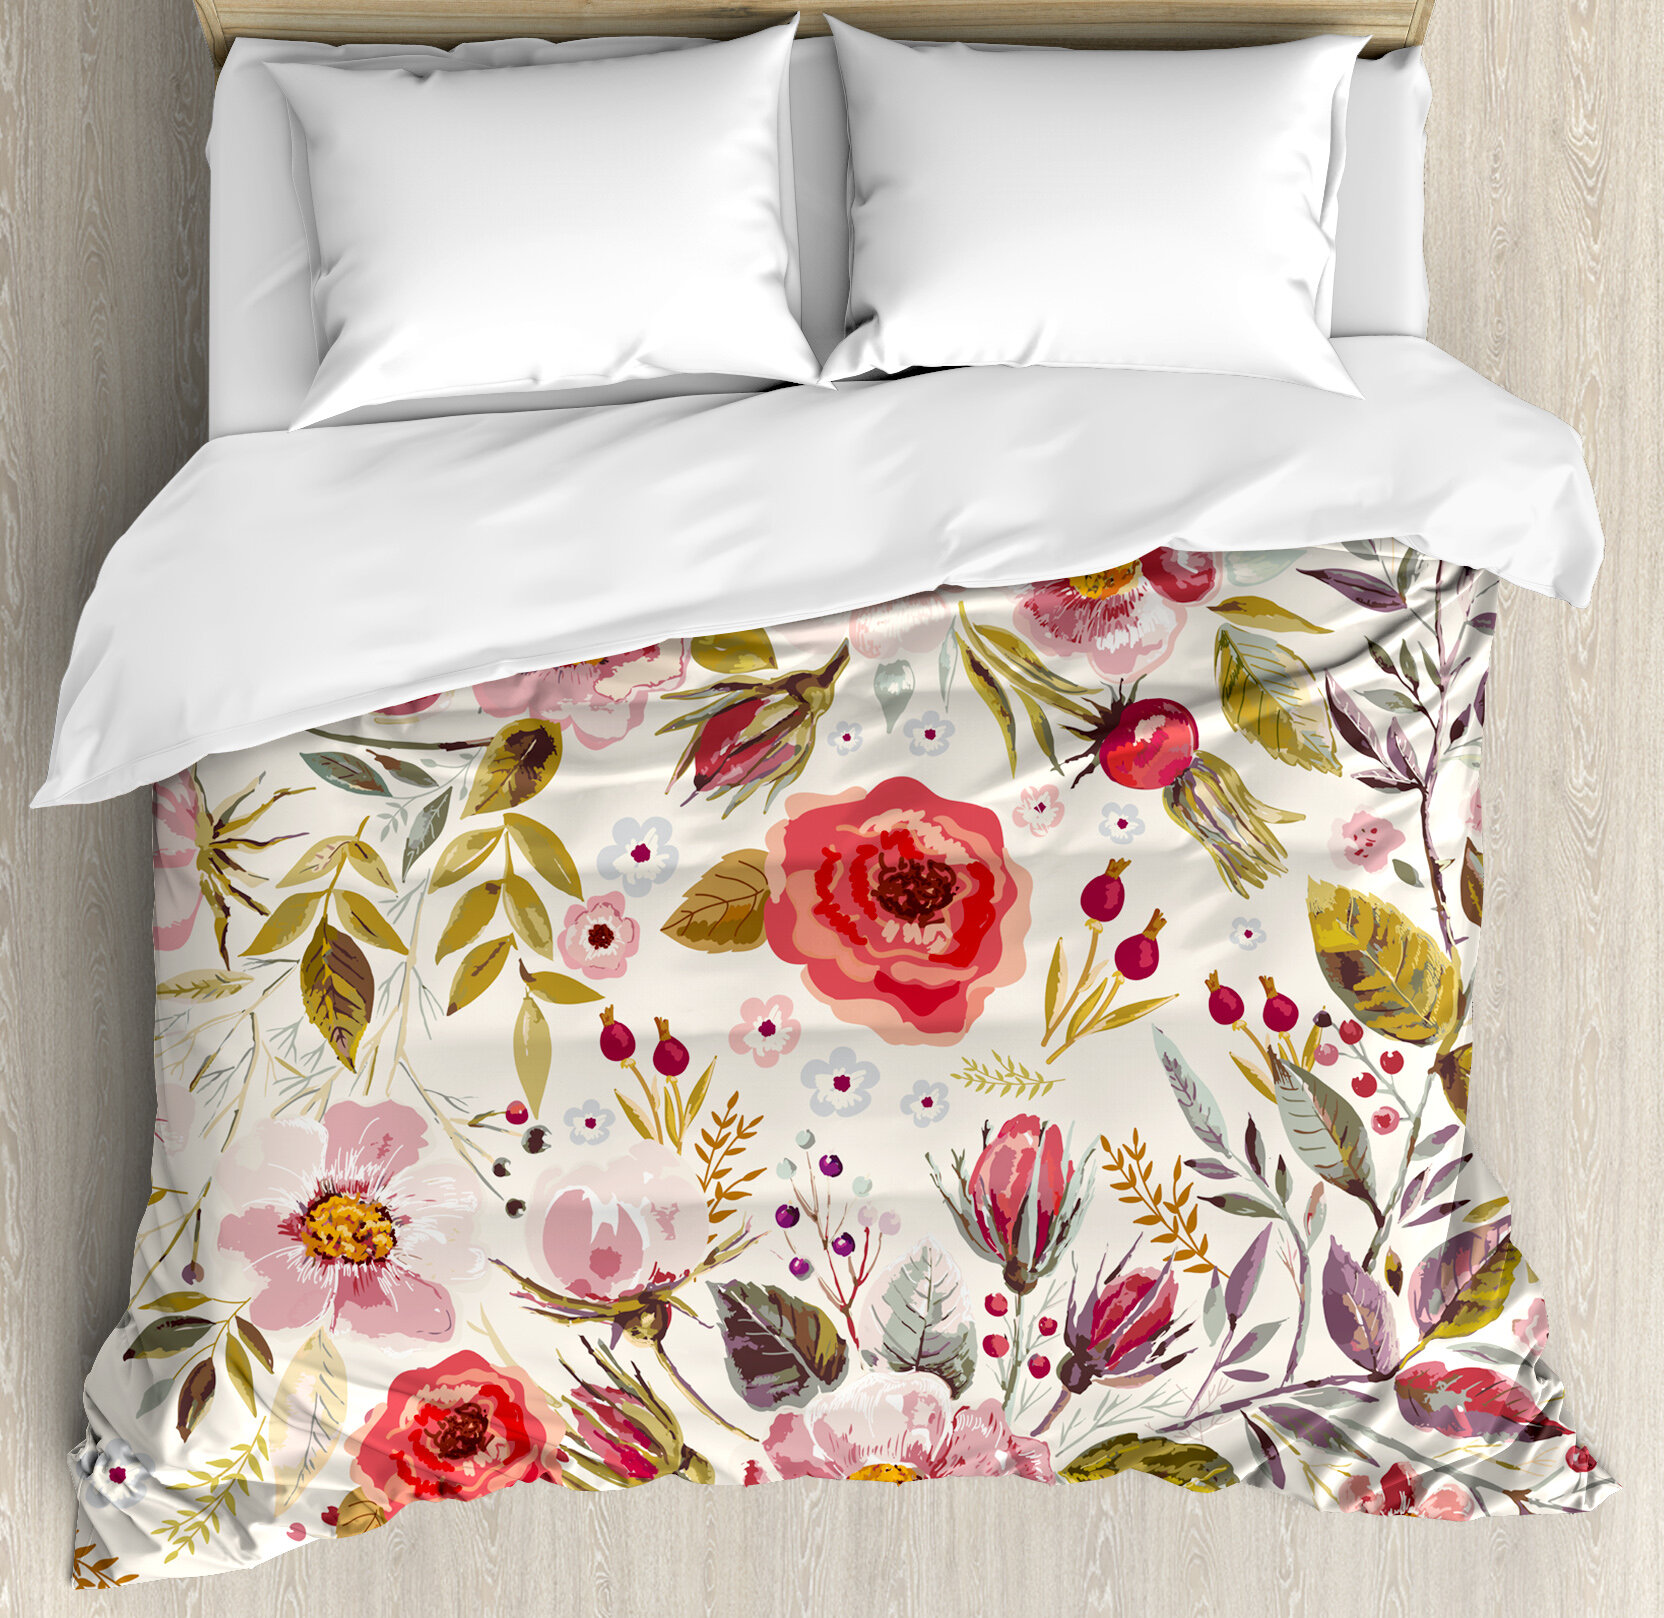 East Urban Home Hand Drawn Watercolor Style Flowers Roses Blooms